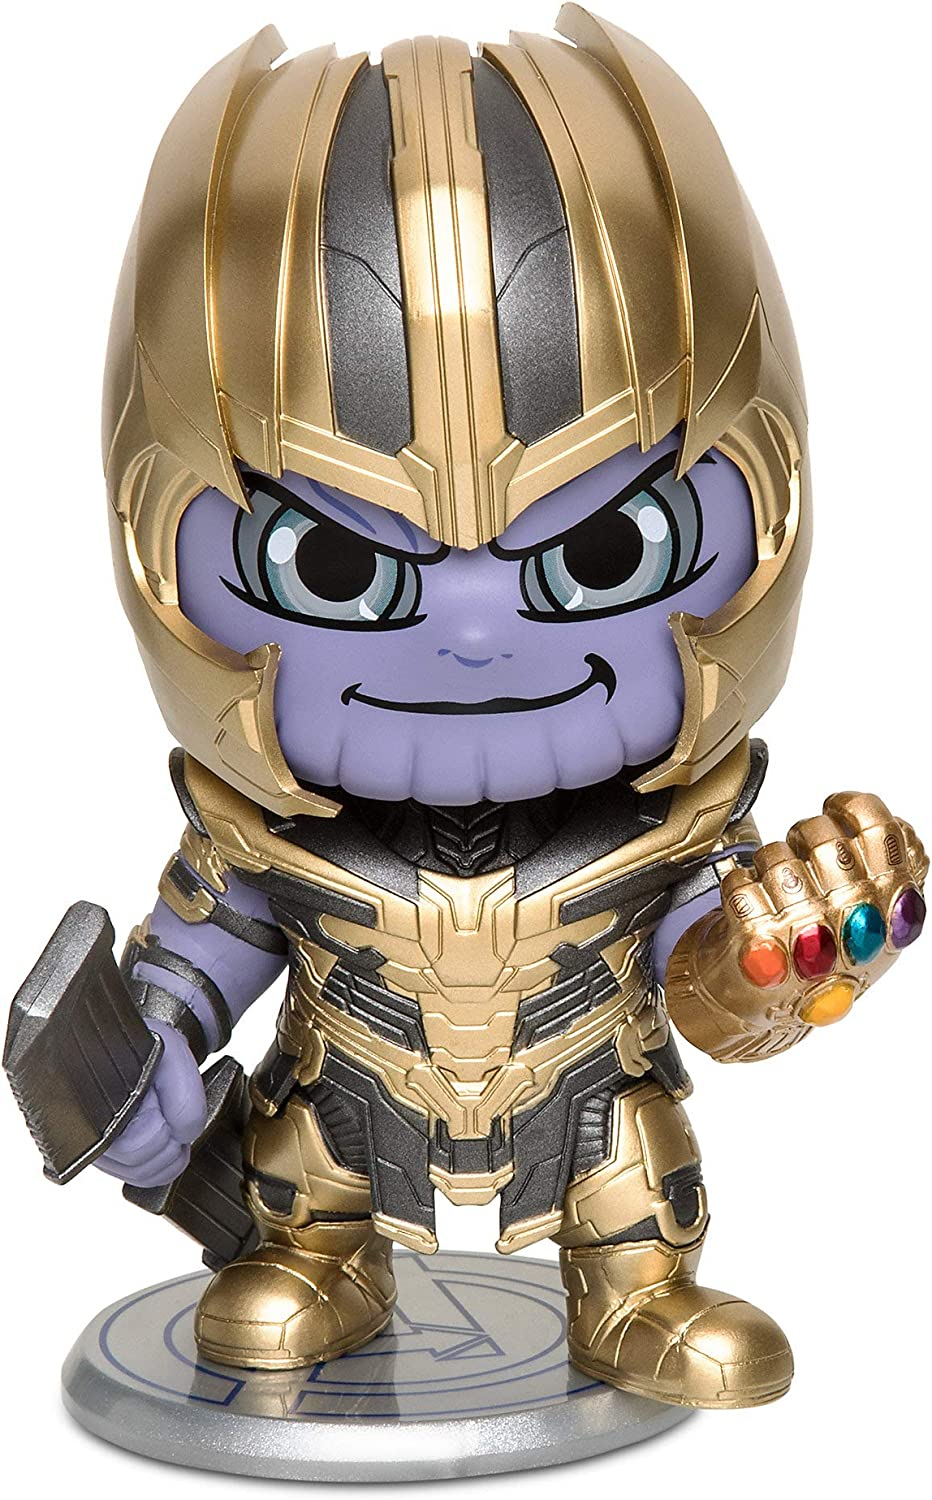 Marvel Disney Thanos Cosbaby Bobble-Head Figure by Hot Toys Avengers: Endgame